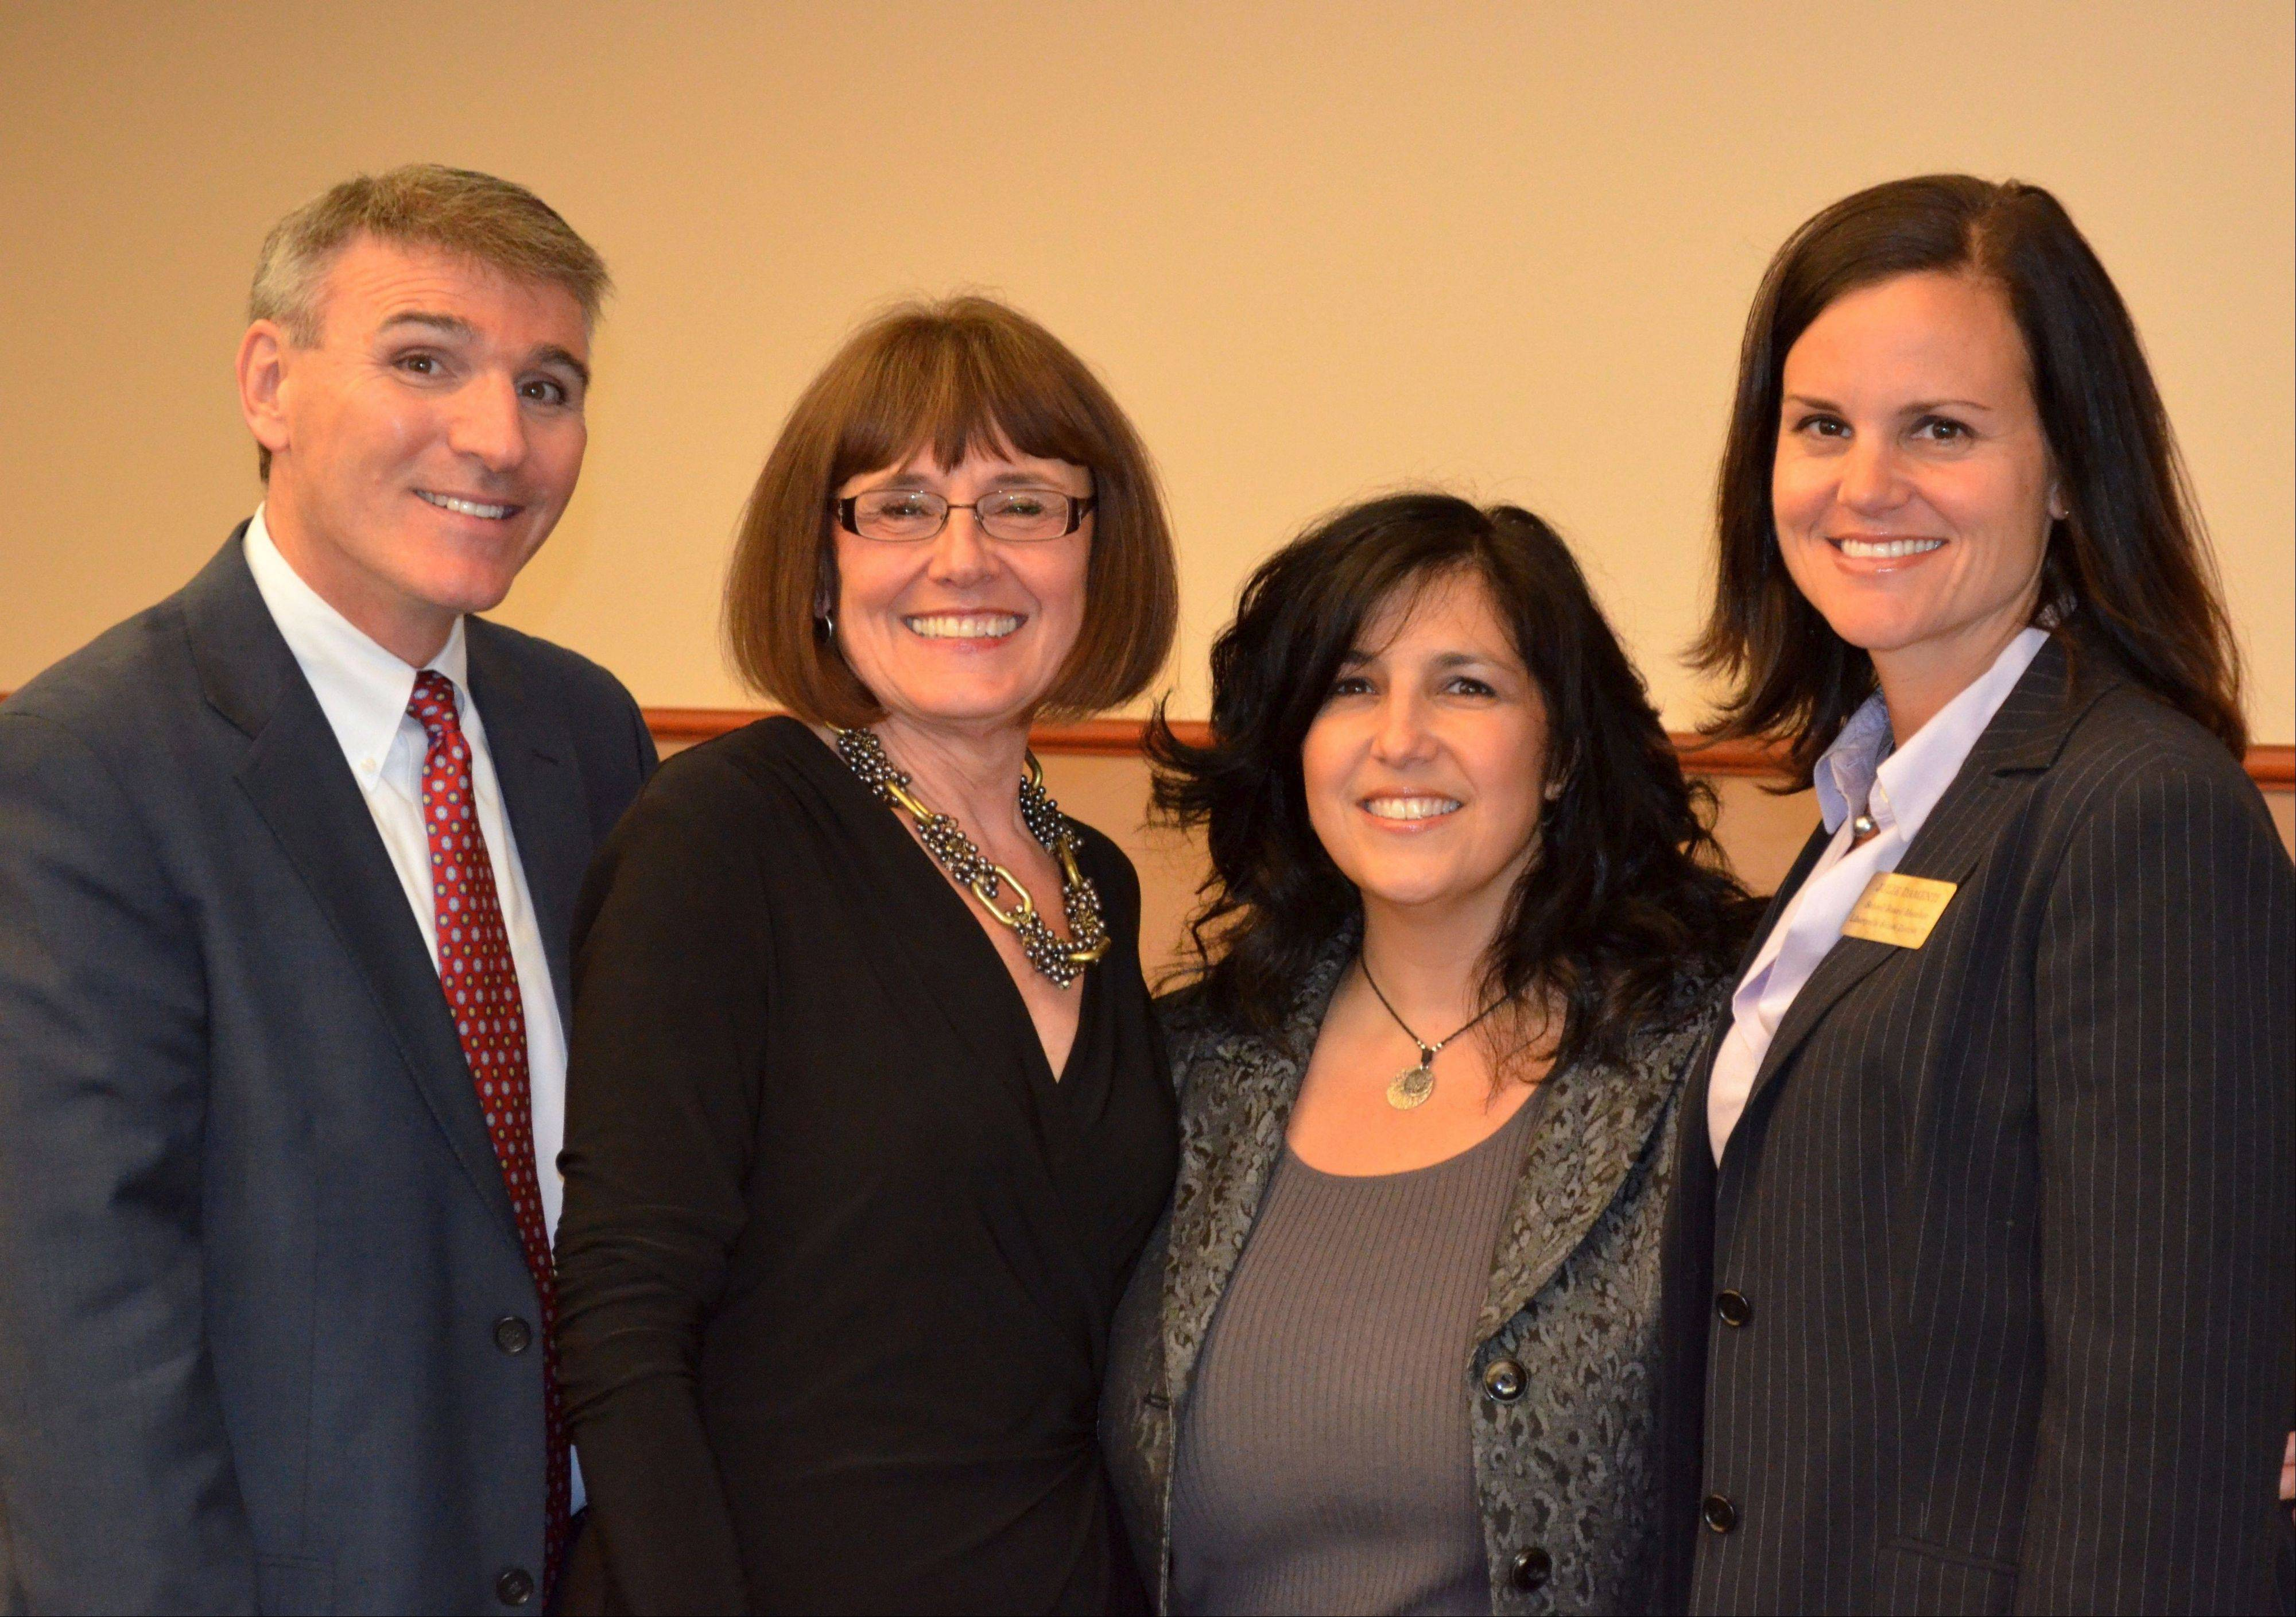 From left: Libertyville Elementary District 70 Superintendent Dr. Guy Schumacher and board members Laura Beltchenko, Maryann Ovassapian and Julie Damenti; not pictured: board member Jennifer Lund.